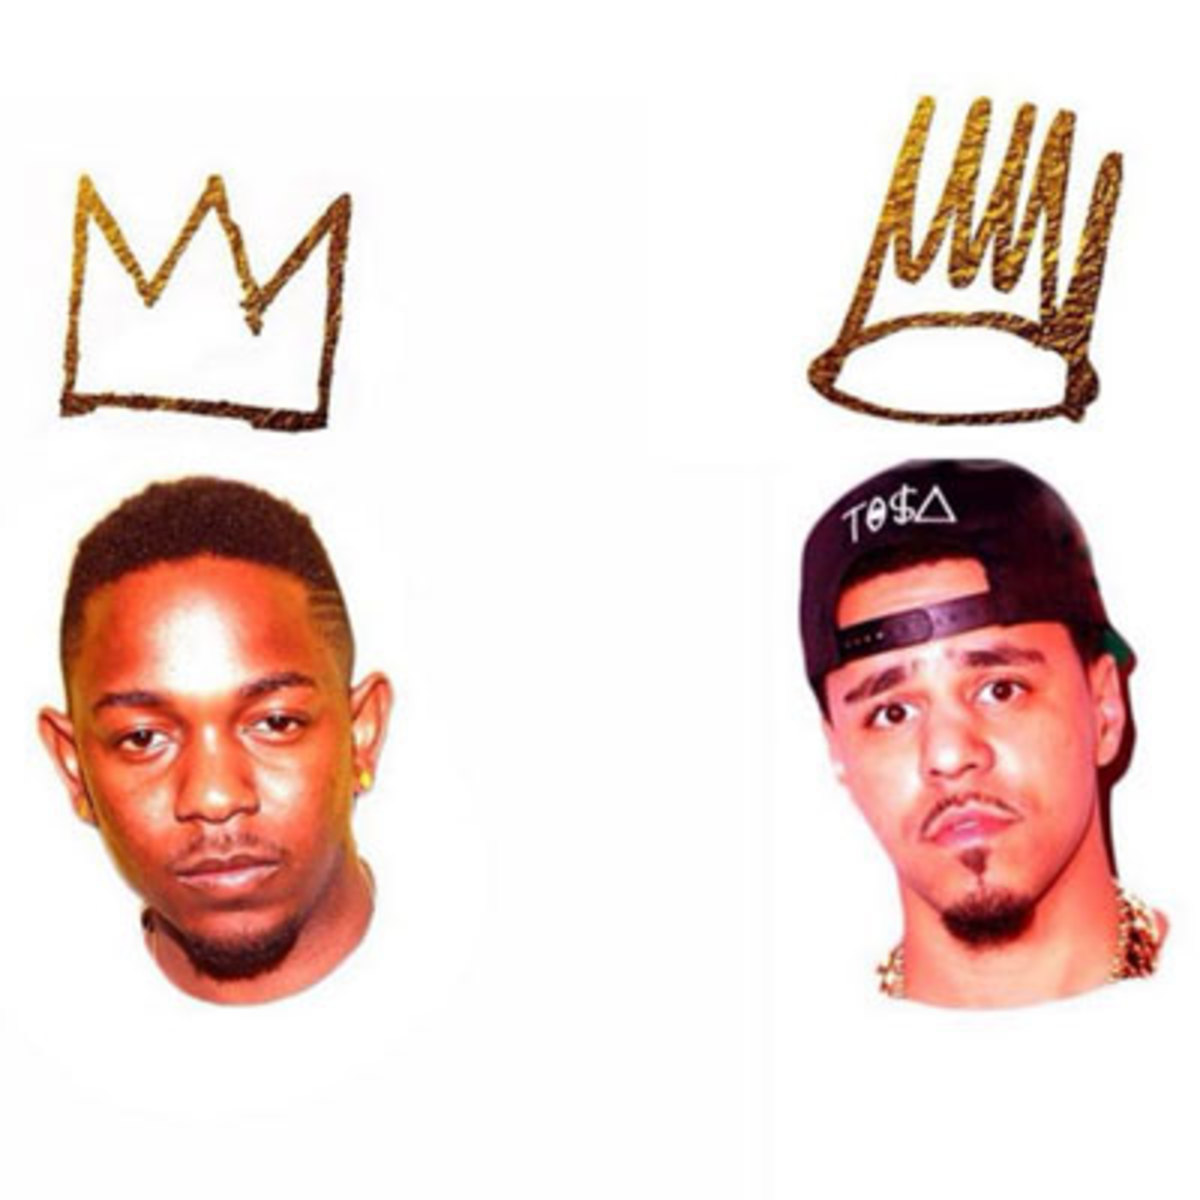 Kendrick lamar and j cole mixtape release date in Melbourne